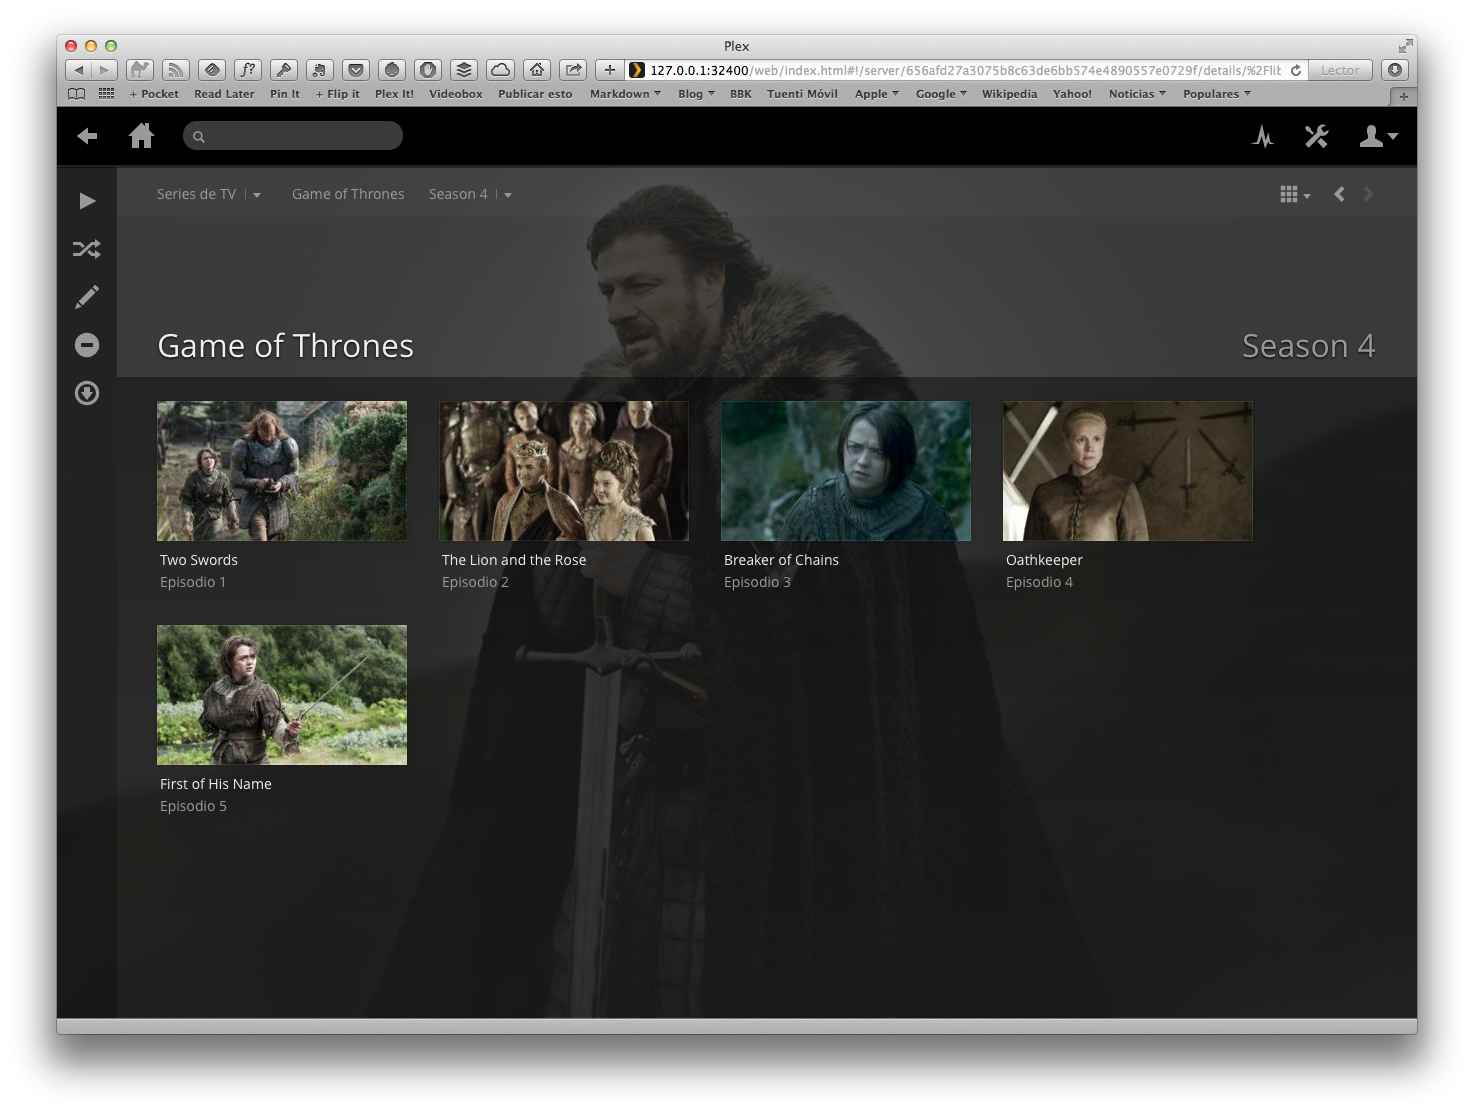 Plex - Series TV - Game of Thrones - Season 4